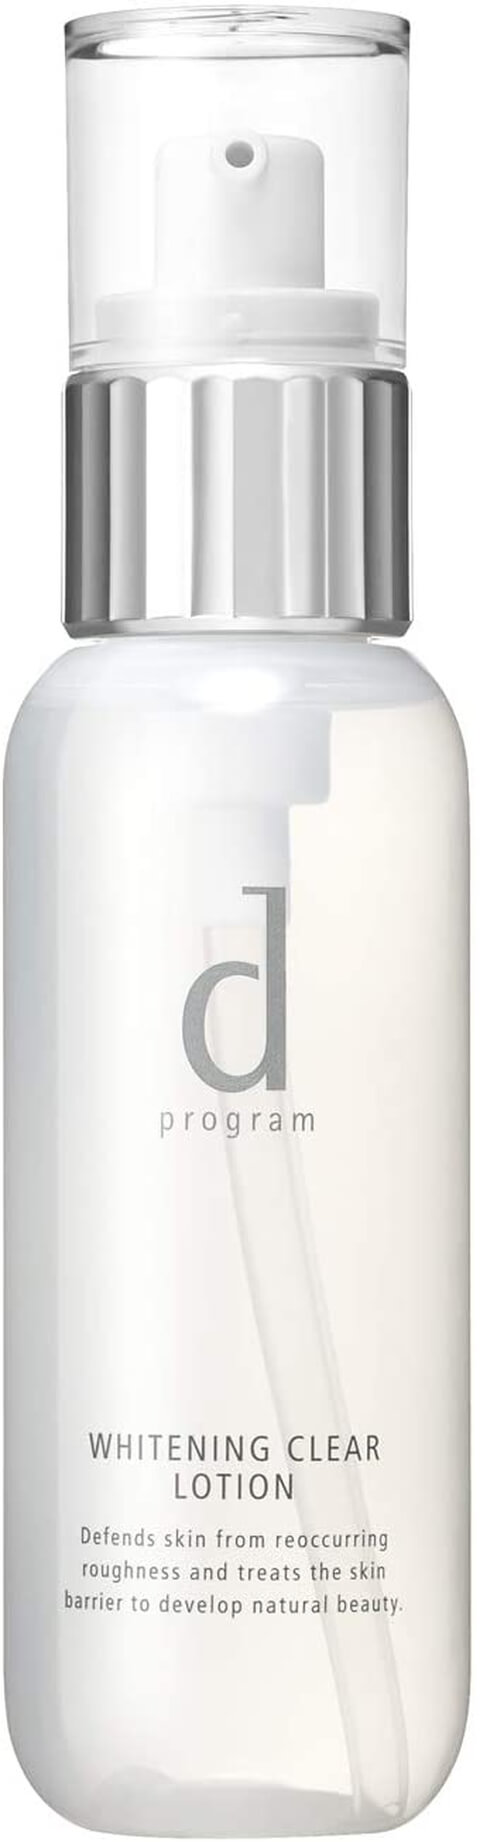 dprogram-white-lotion